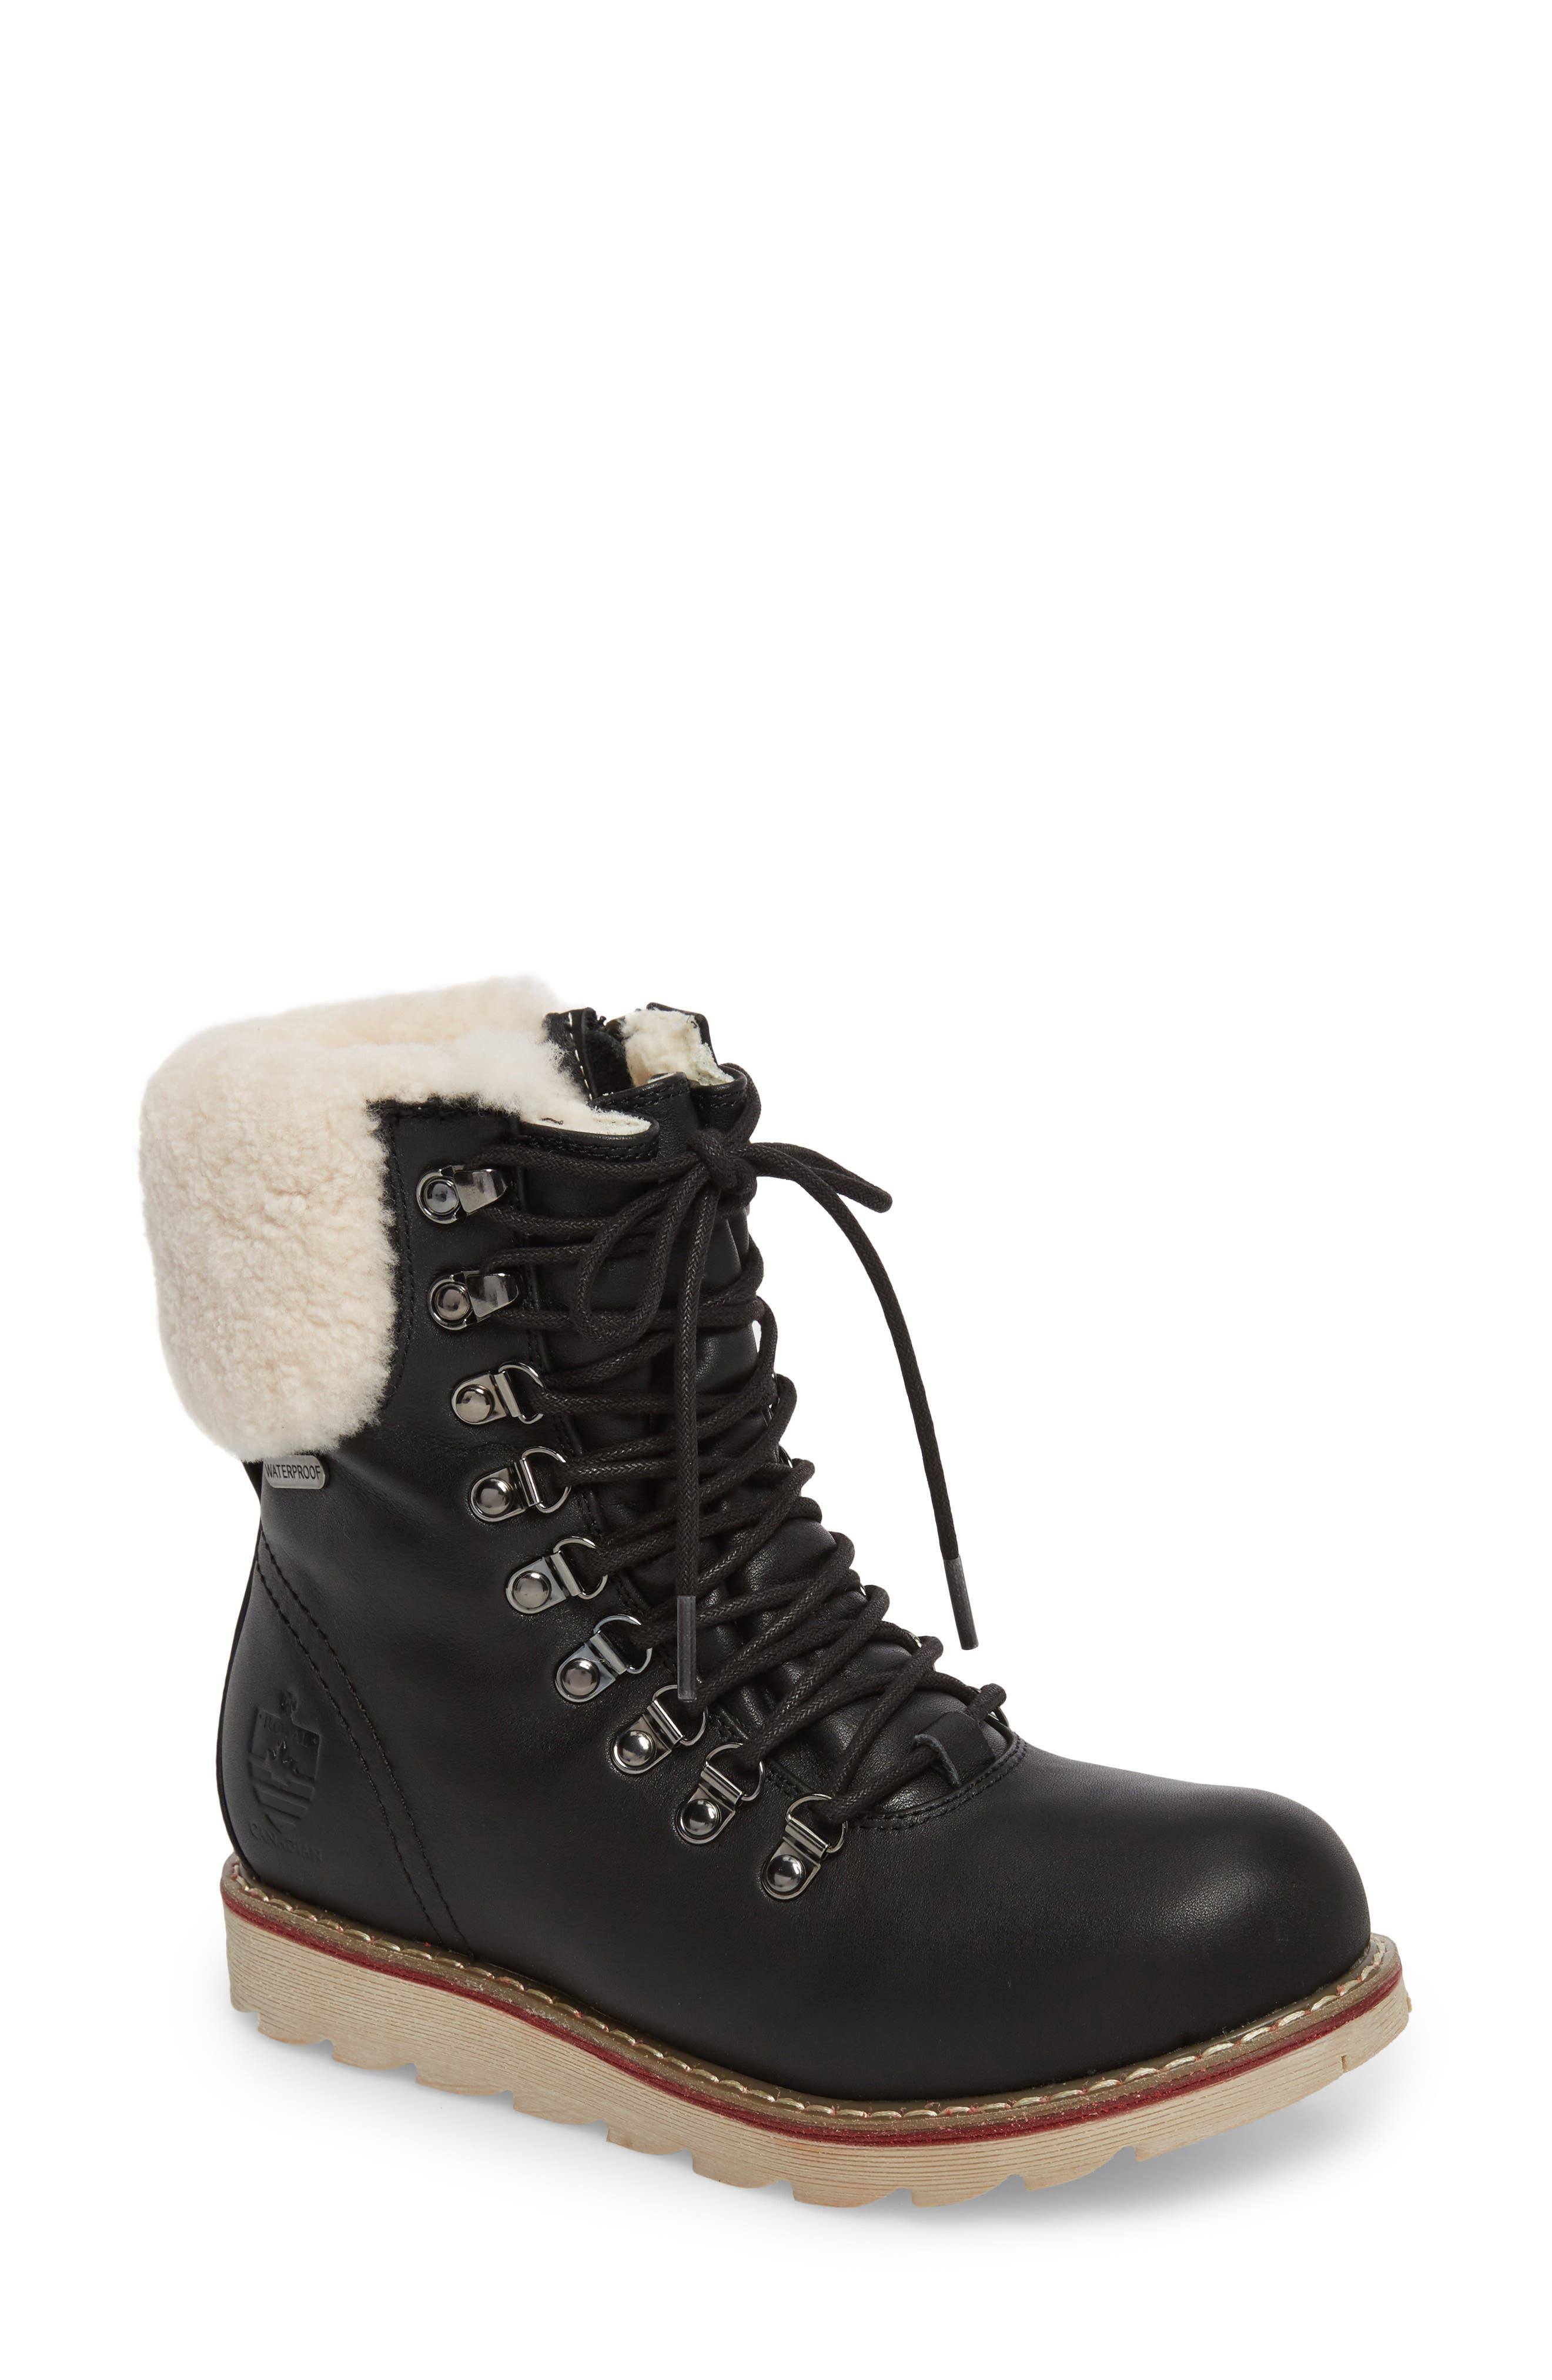 Lethbridge Waterproof Snow Boot with Genuine Shearling Cuff,                         Main,                         color, BLACK LEATHER